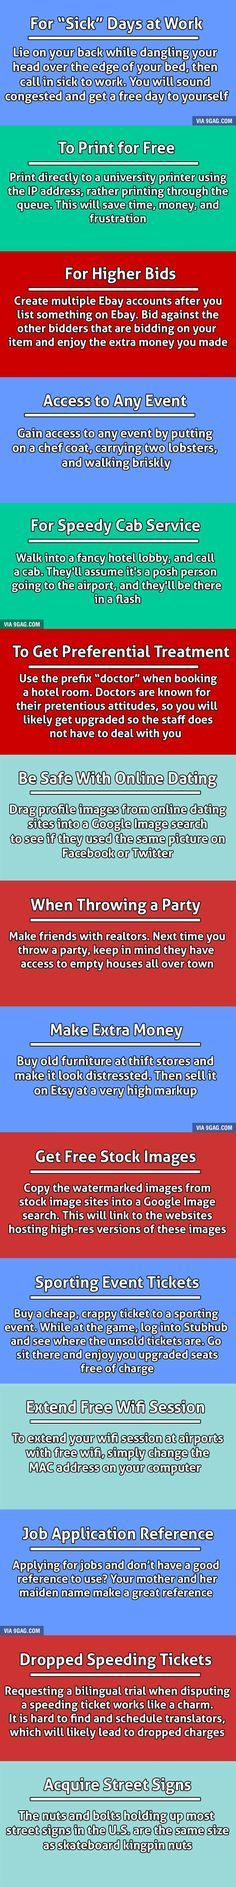 15 Unethical Life Hacks To Help You Get What You Want.